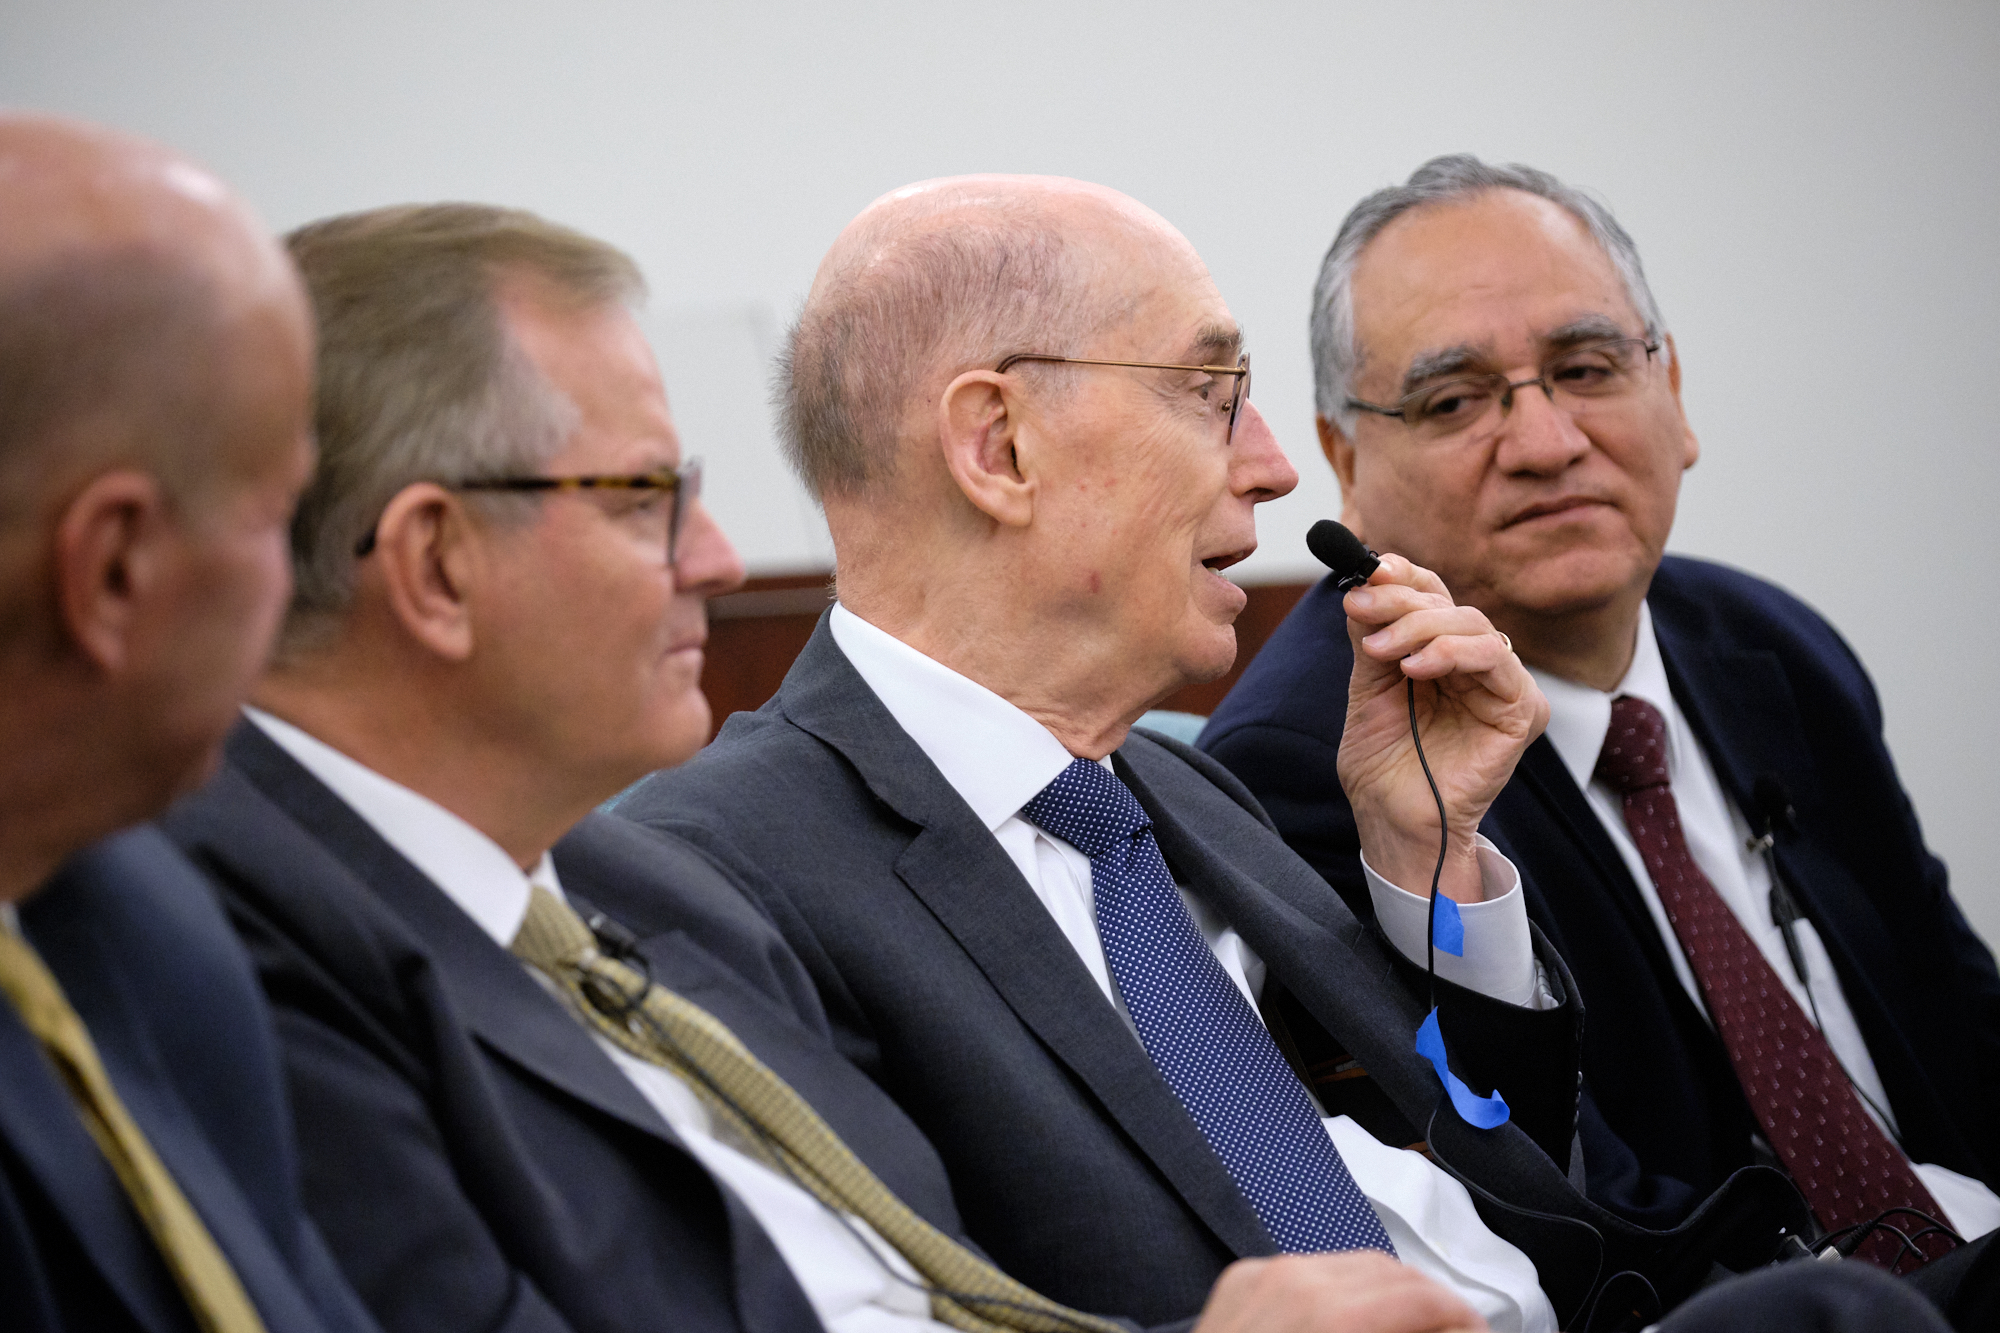 President Henry B. Eyring, second from right, responds to a question during the Nov. 16, 2019, North Carolina Charlotte Leadership Conference. He was joined on the panel by, from left, Elder Matthew Harding, Elder Gary E. Stevenson and Elder Hugo Montoya.